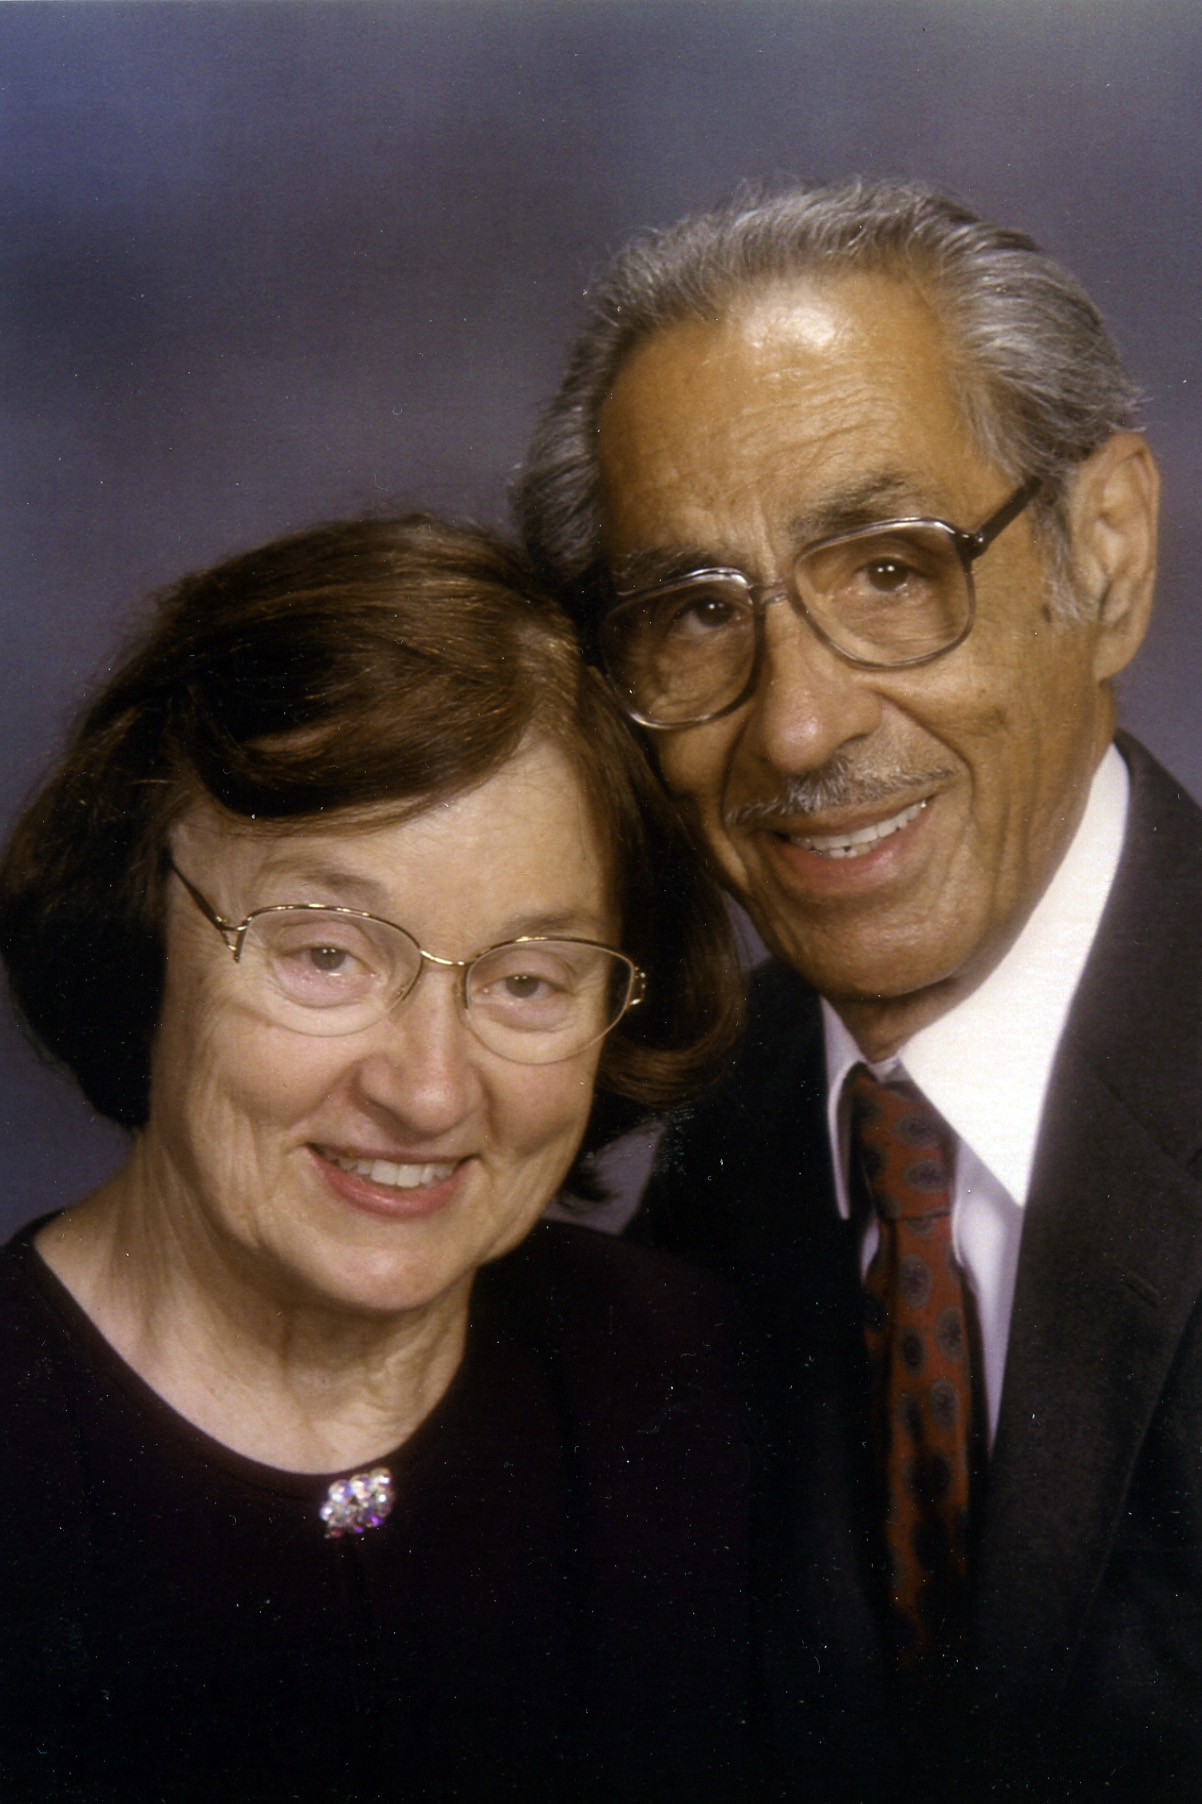 Hank and Jeanine Handjani